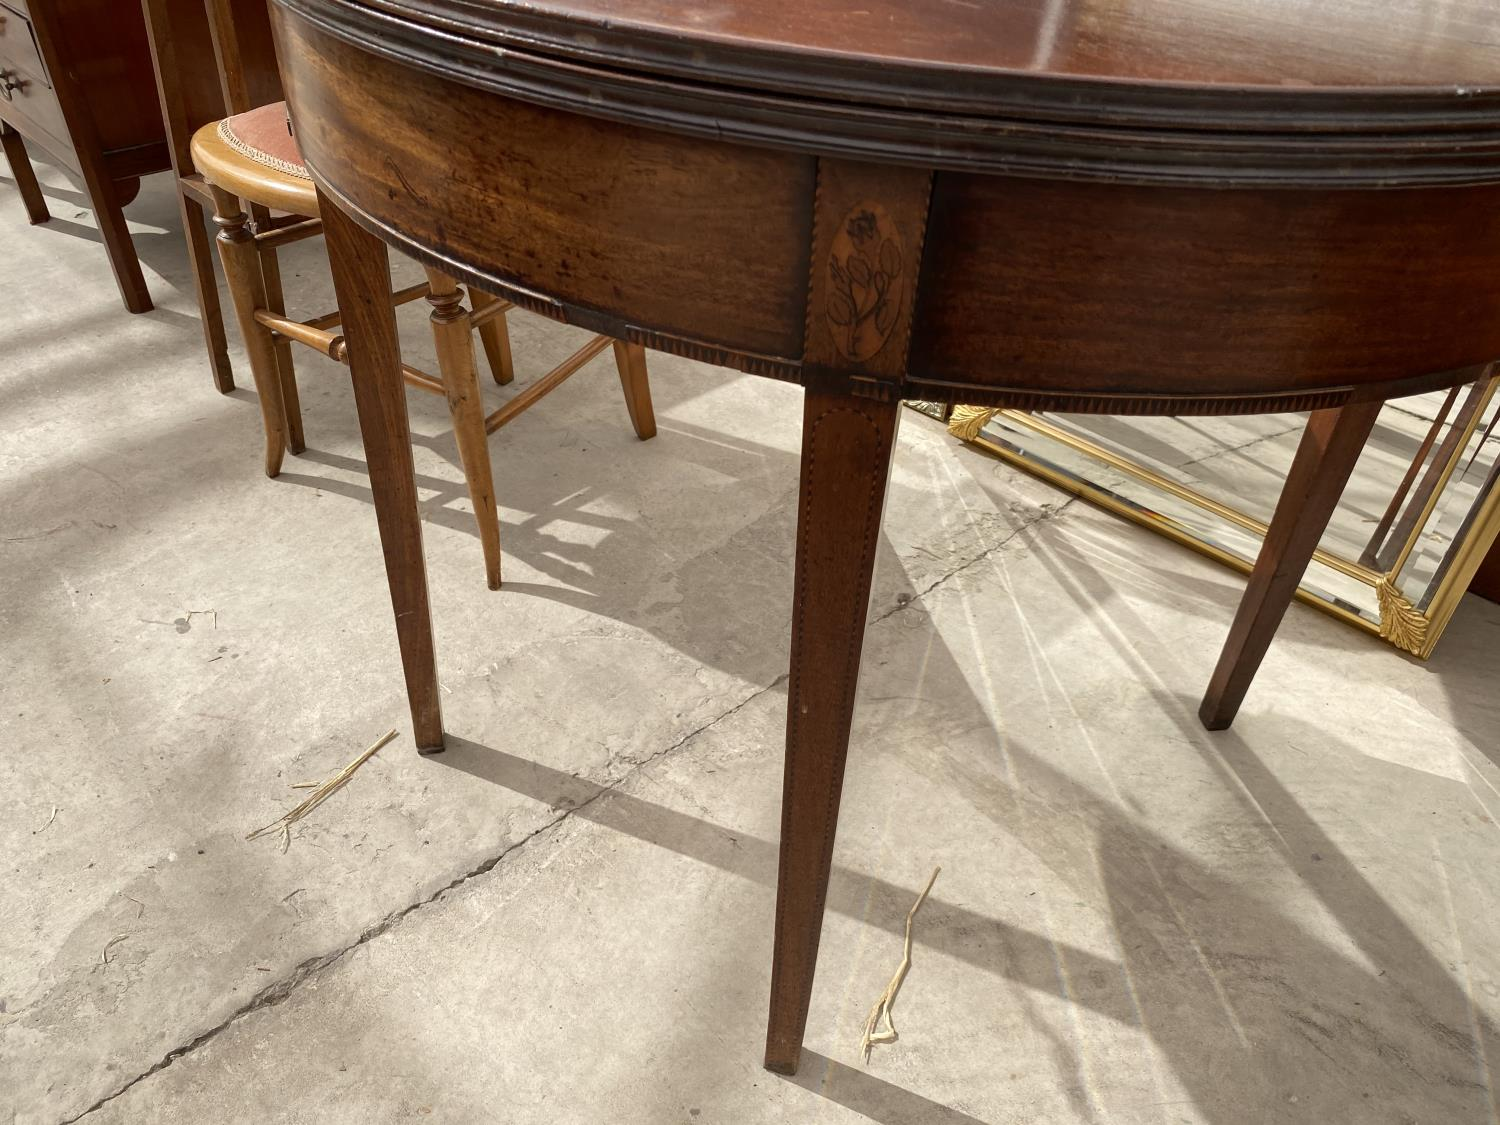 """A GEORGE III MAHOGANY AND INLAID FOLD-OVER TEA TABLE, 35"""" DIAMETER OPENED - Image 3 of 5"""